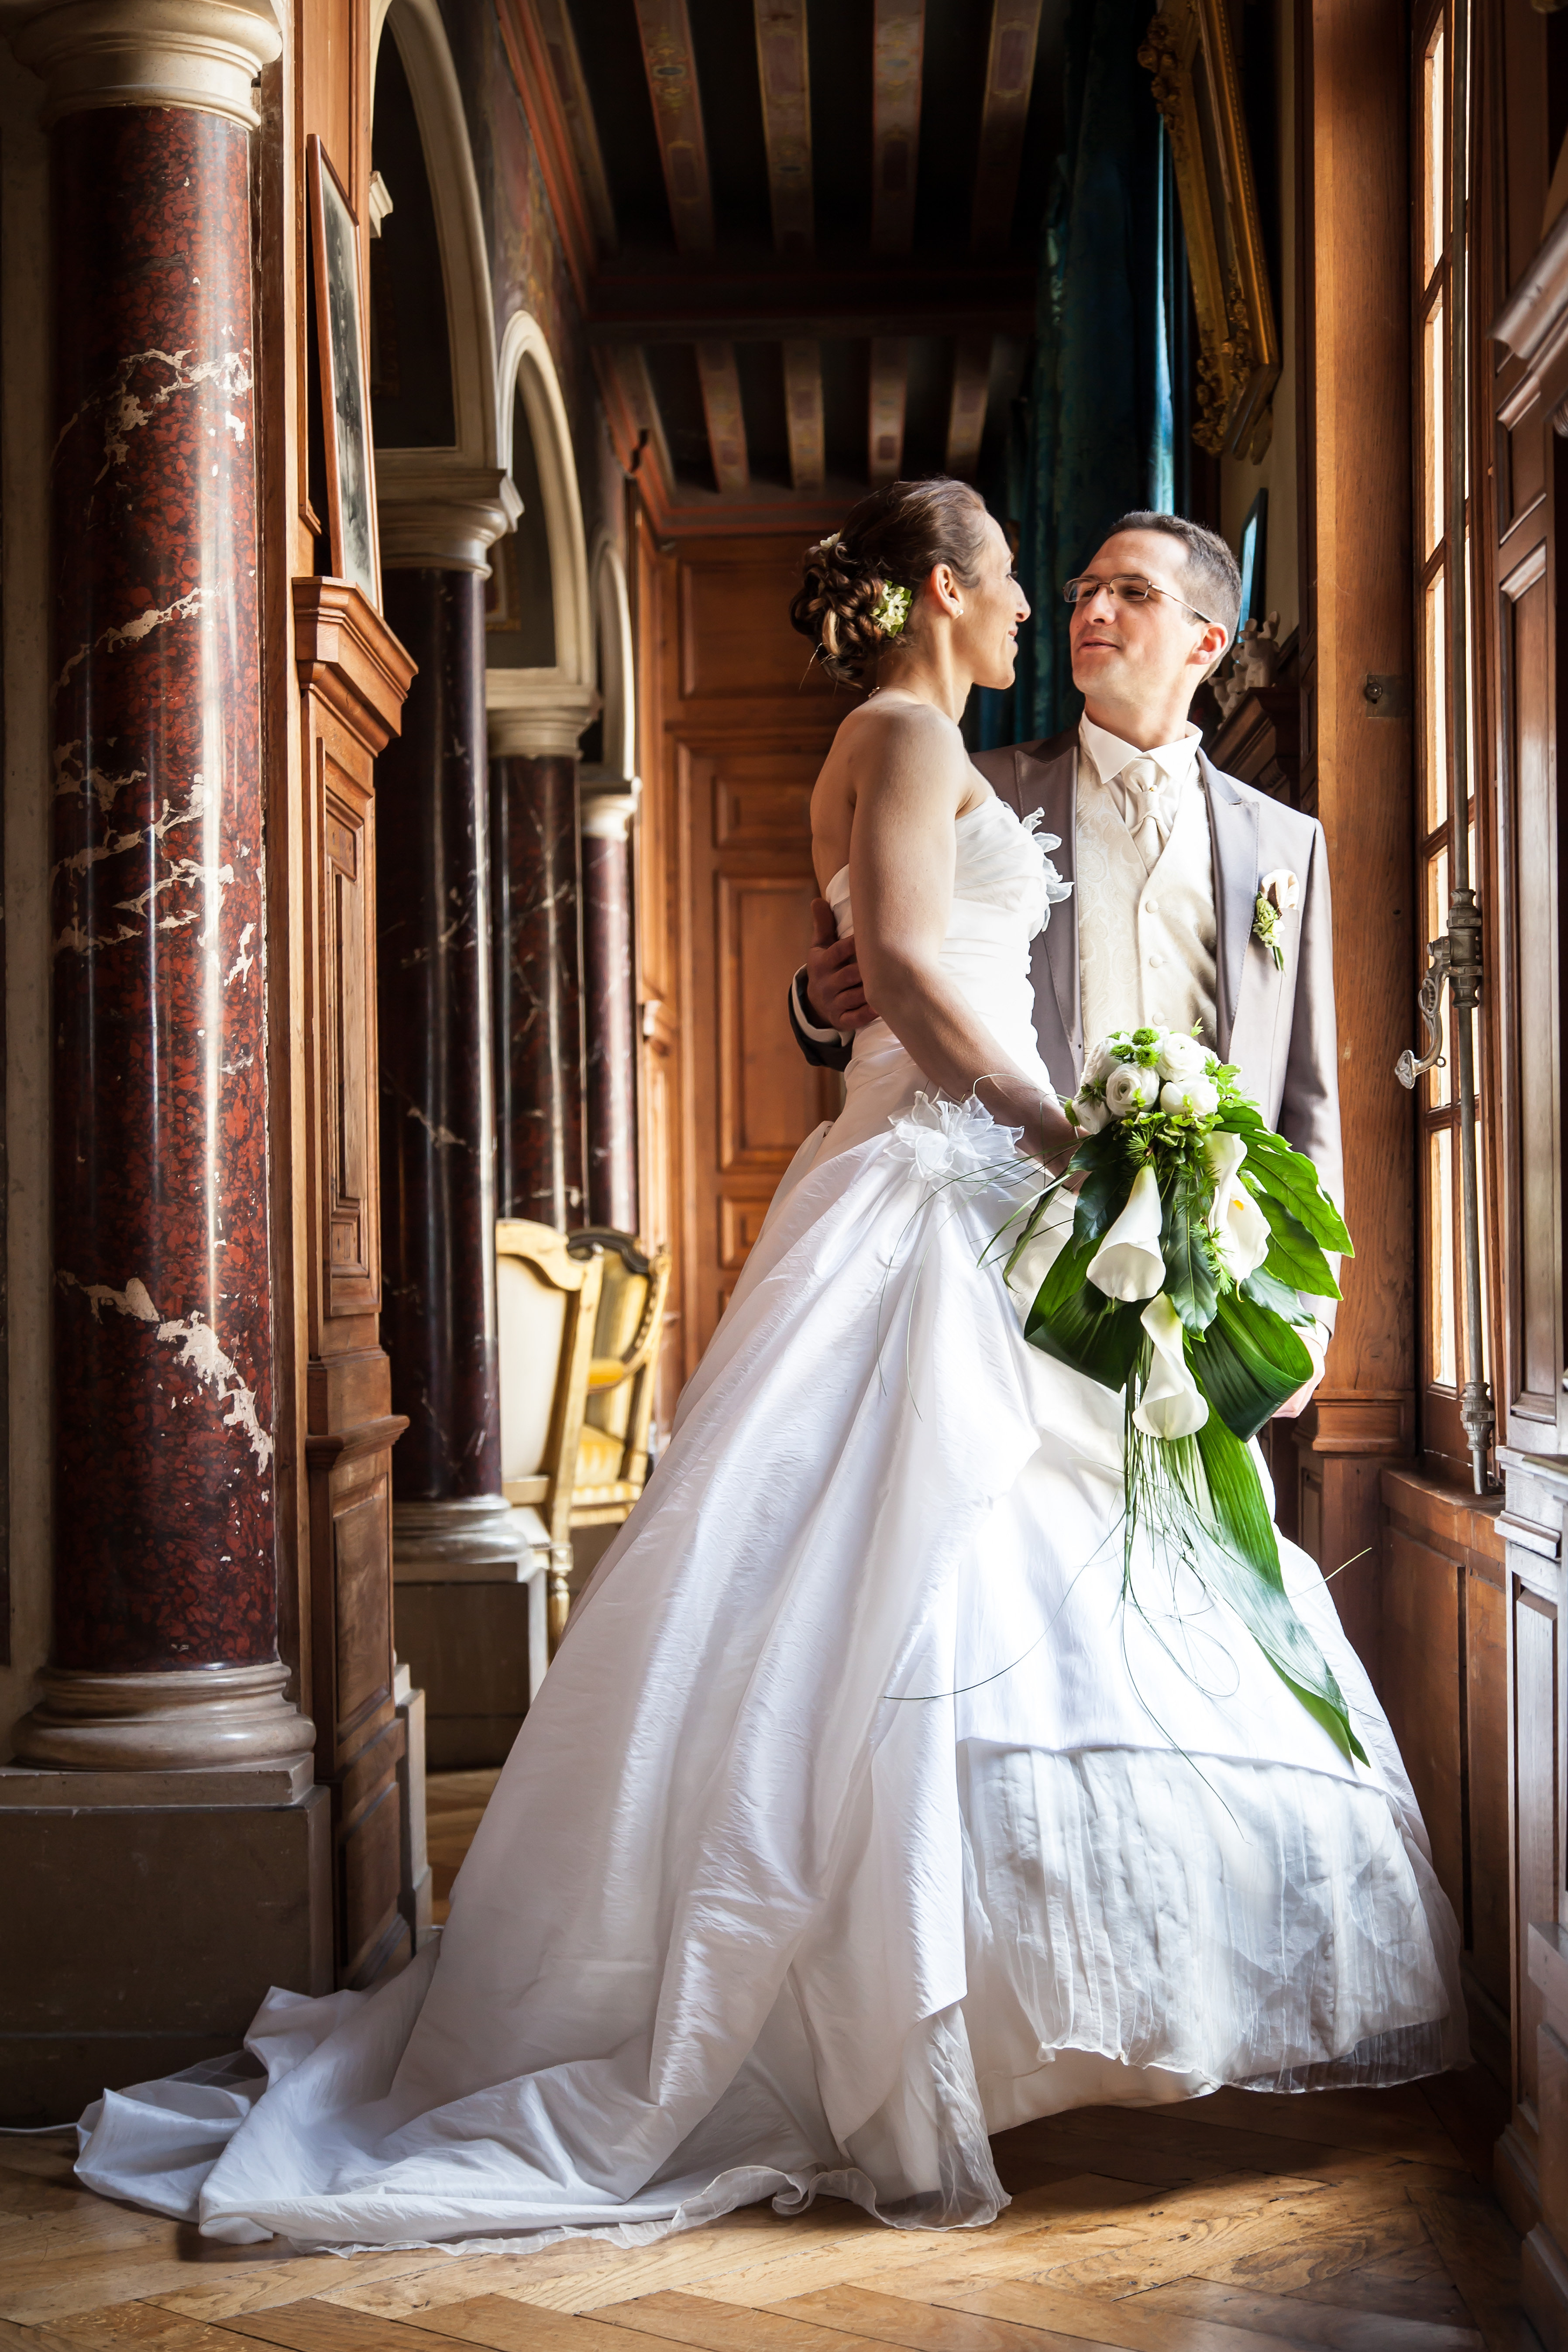 bisceglia pascal photographe autun bourgogne sully mariage chteau - Chateau De Sully Mariage